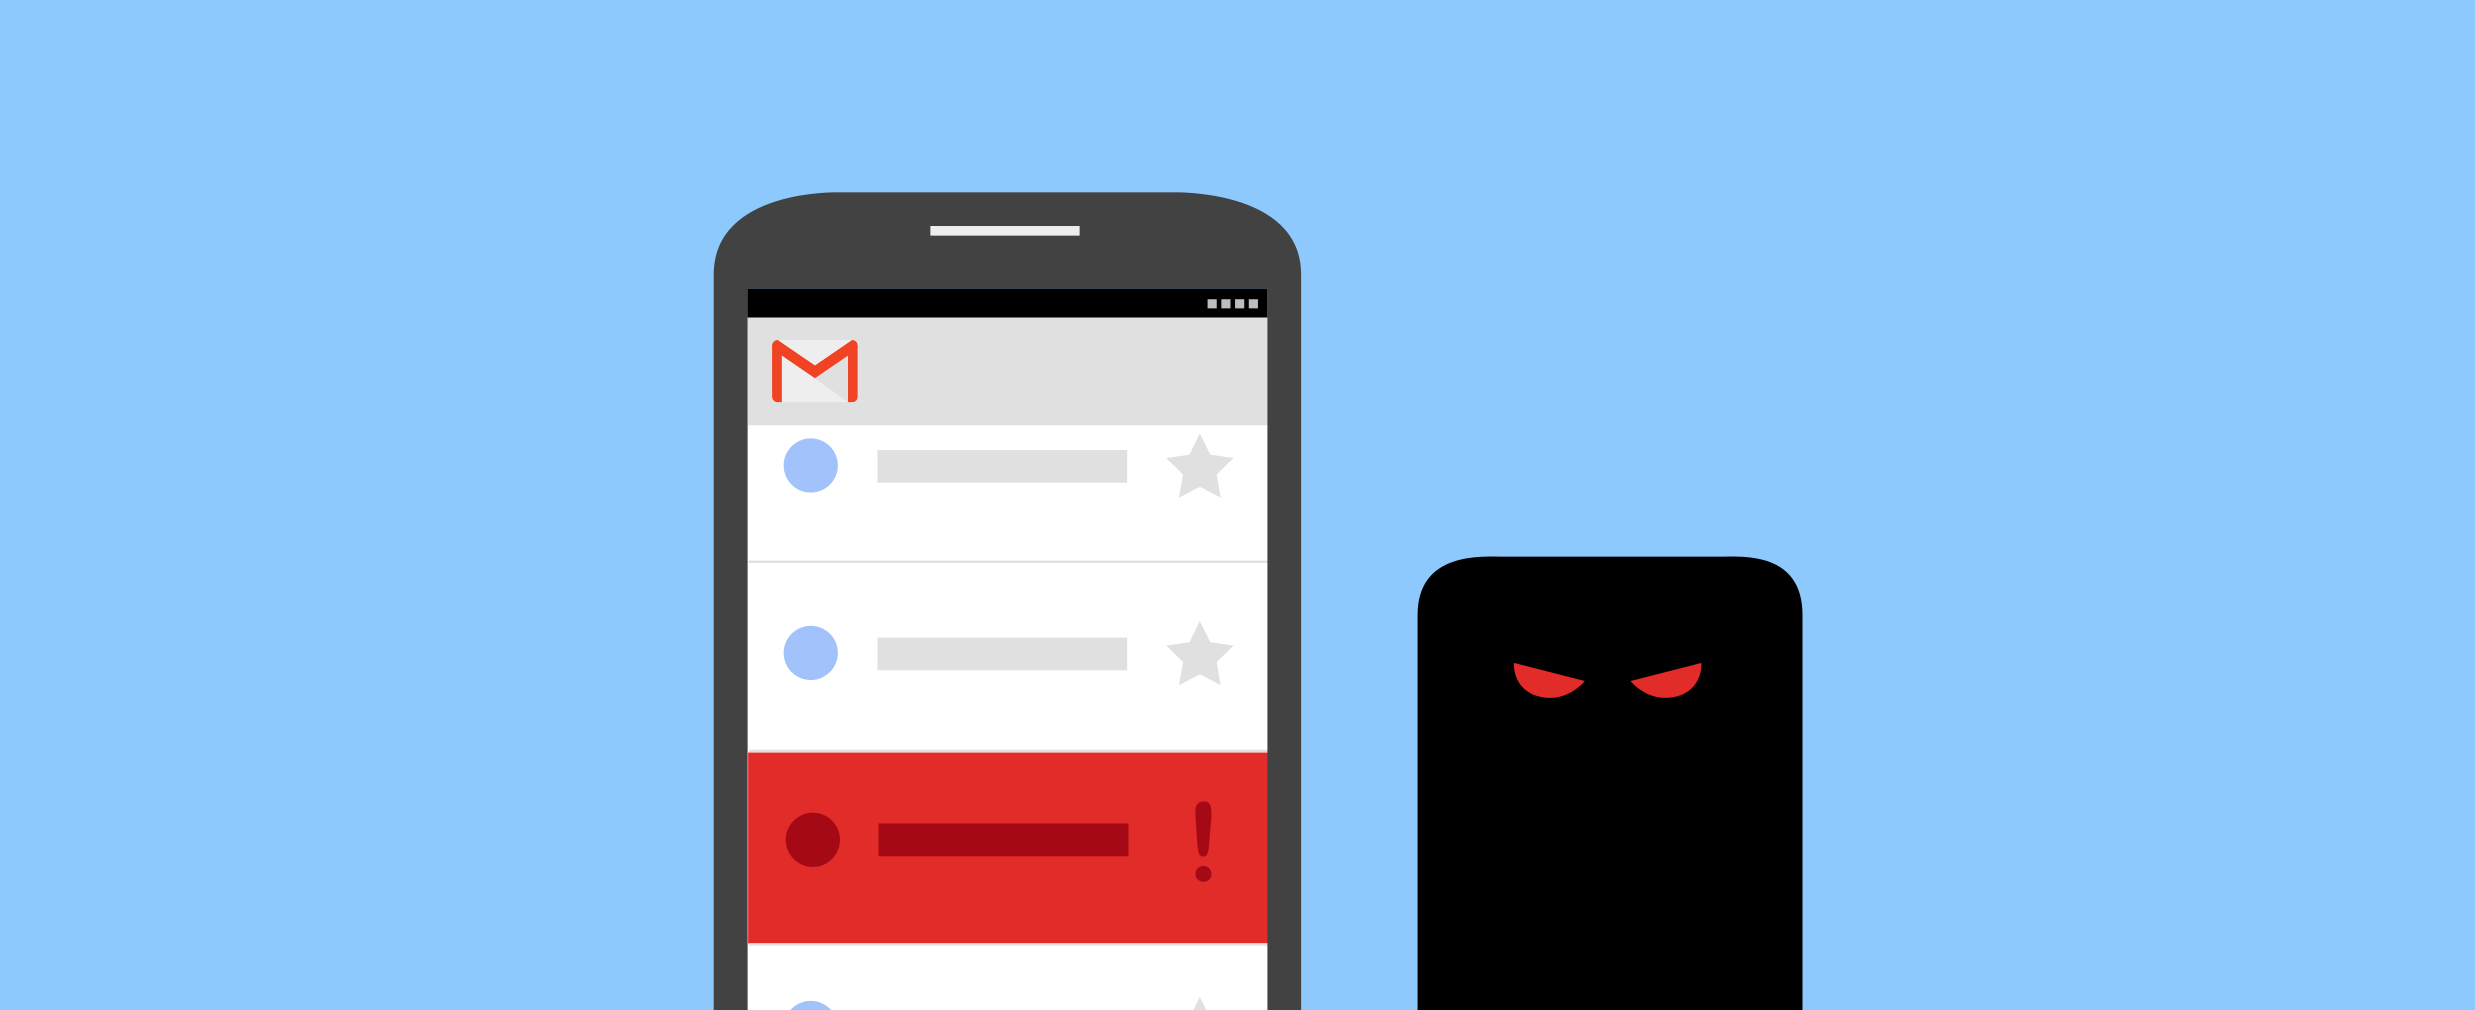 How To Make Gmail Email Unforwardable on Mobile